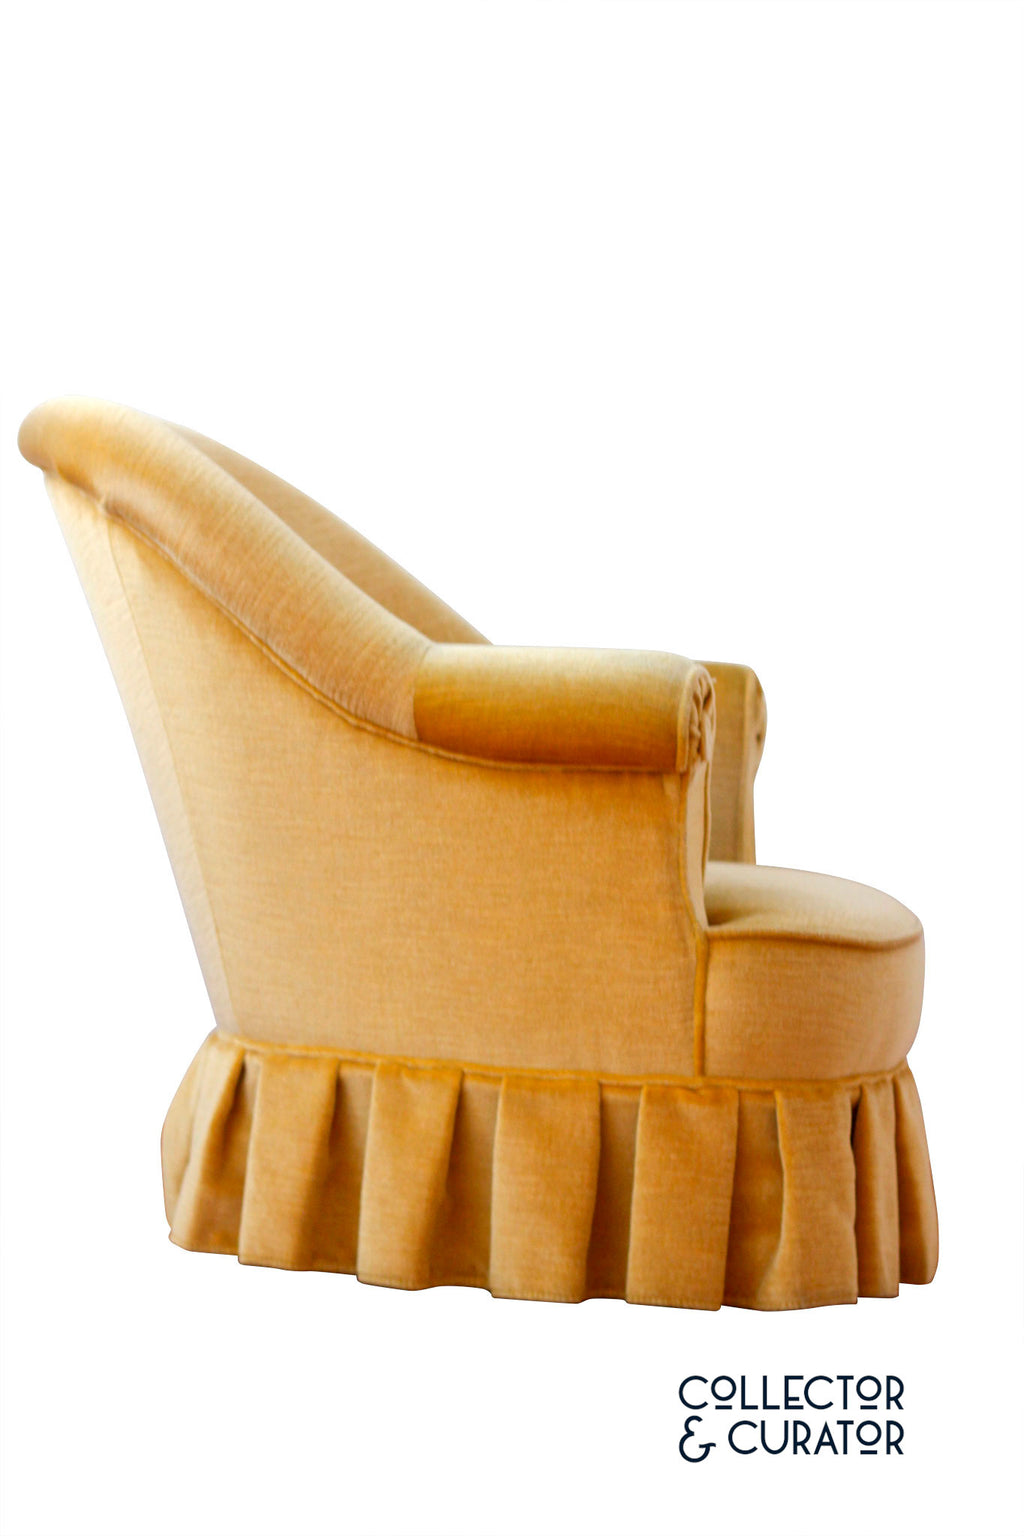 Yellow Velvet Chair Armchair - Collector & Curator